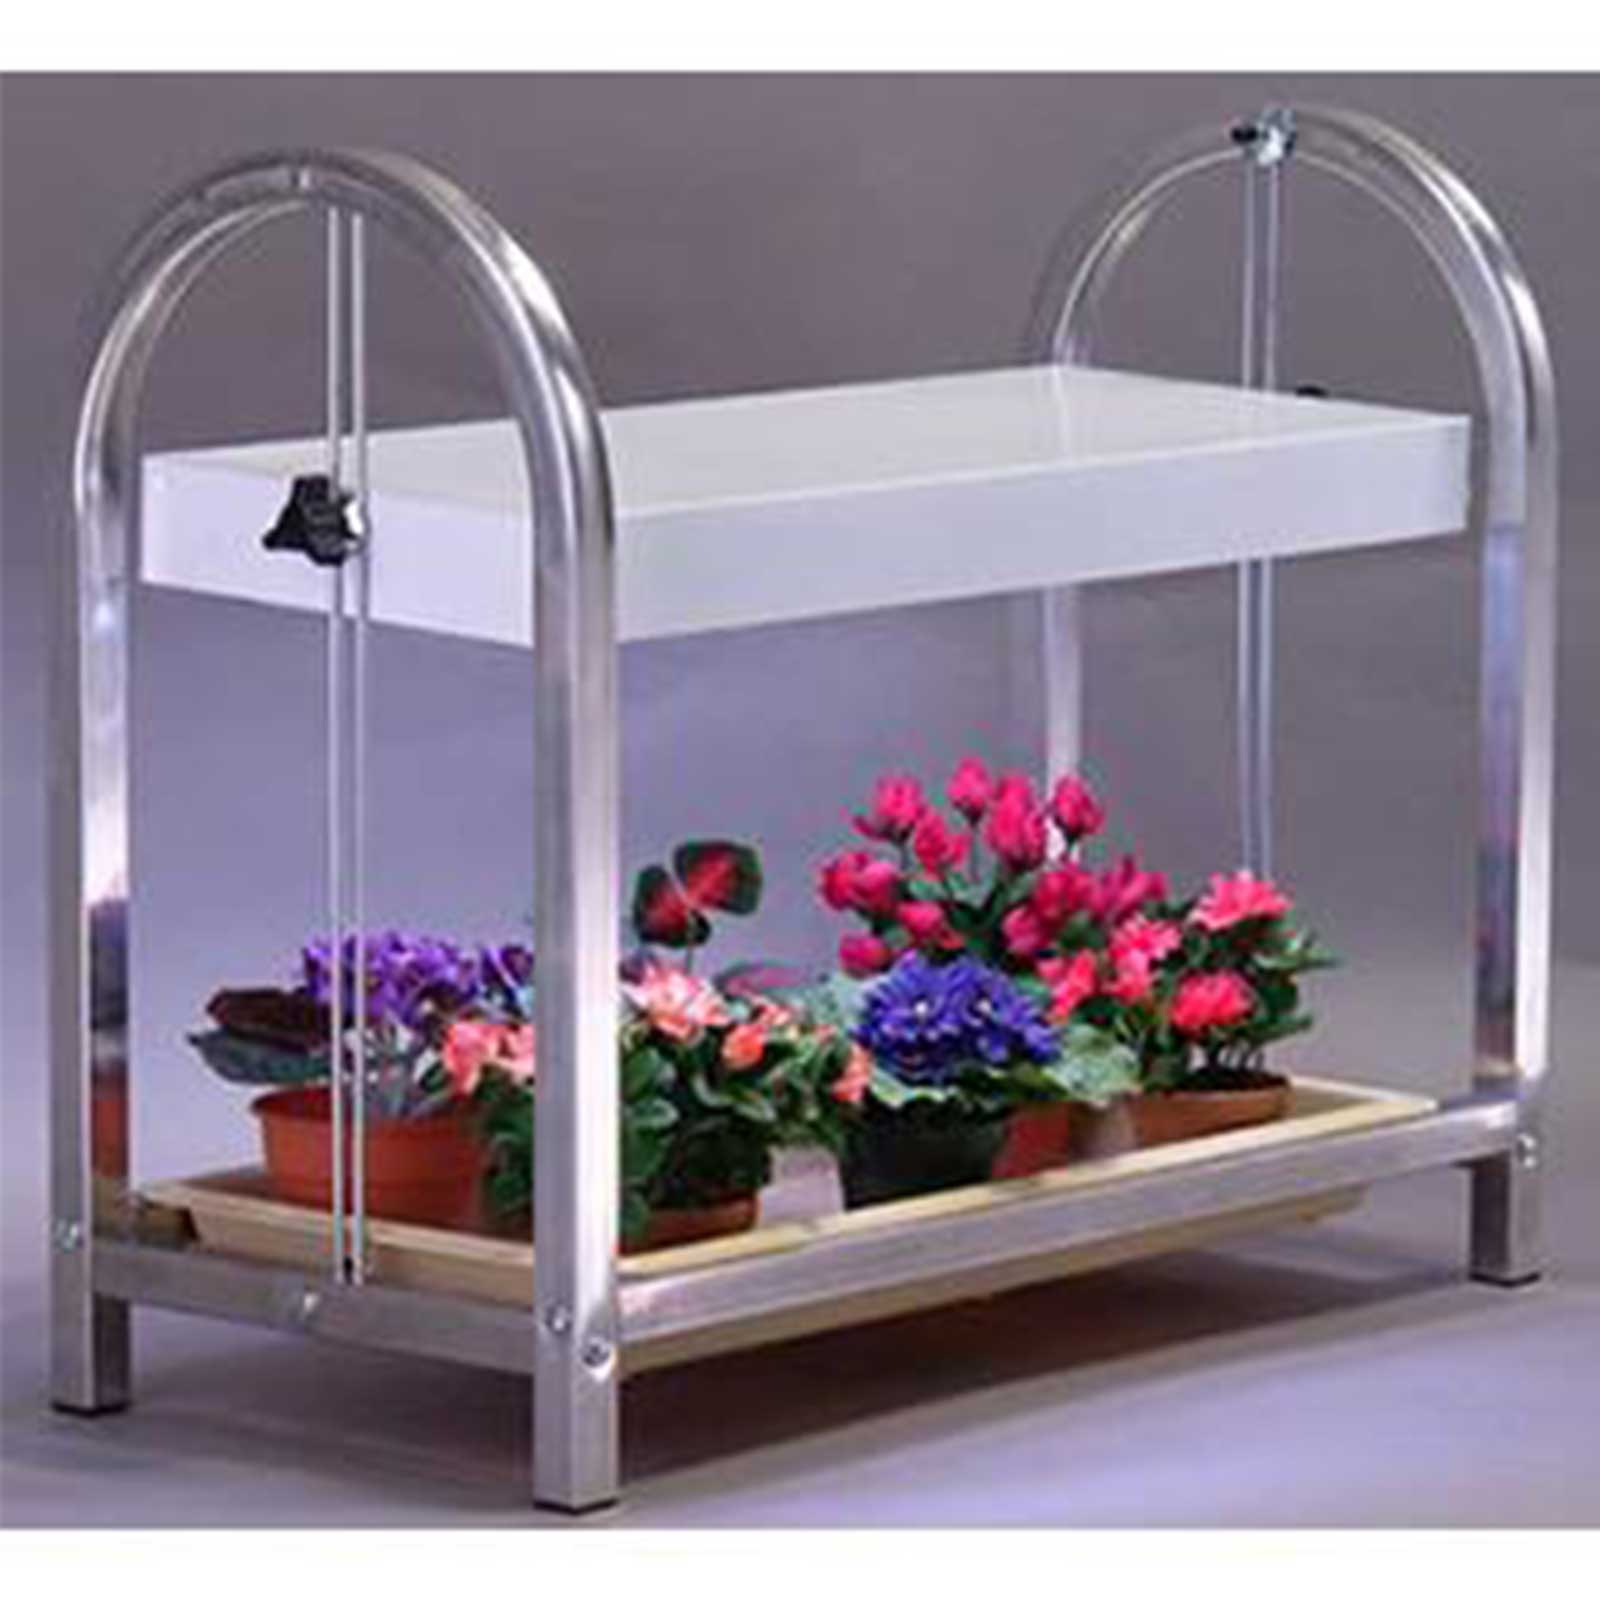 This plant growing rack will fit one tray of wheatgrass, barleygrass or microgreens at a time.  The grow stand has a built in growing light and a water drip tray. Comes with optional caster wheels. Available in chrome or brown color.